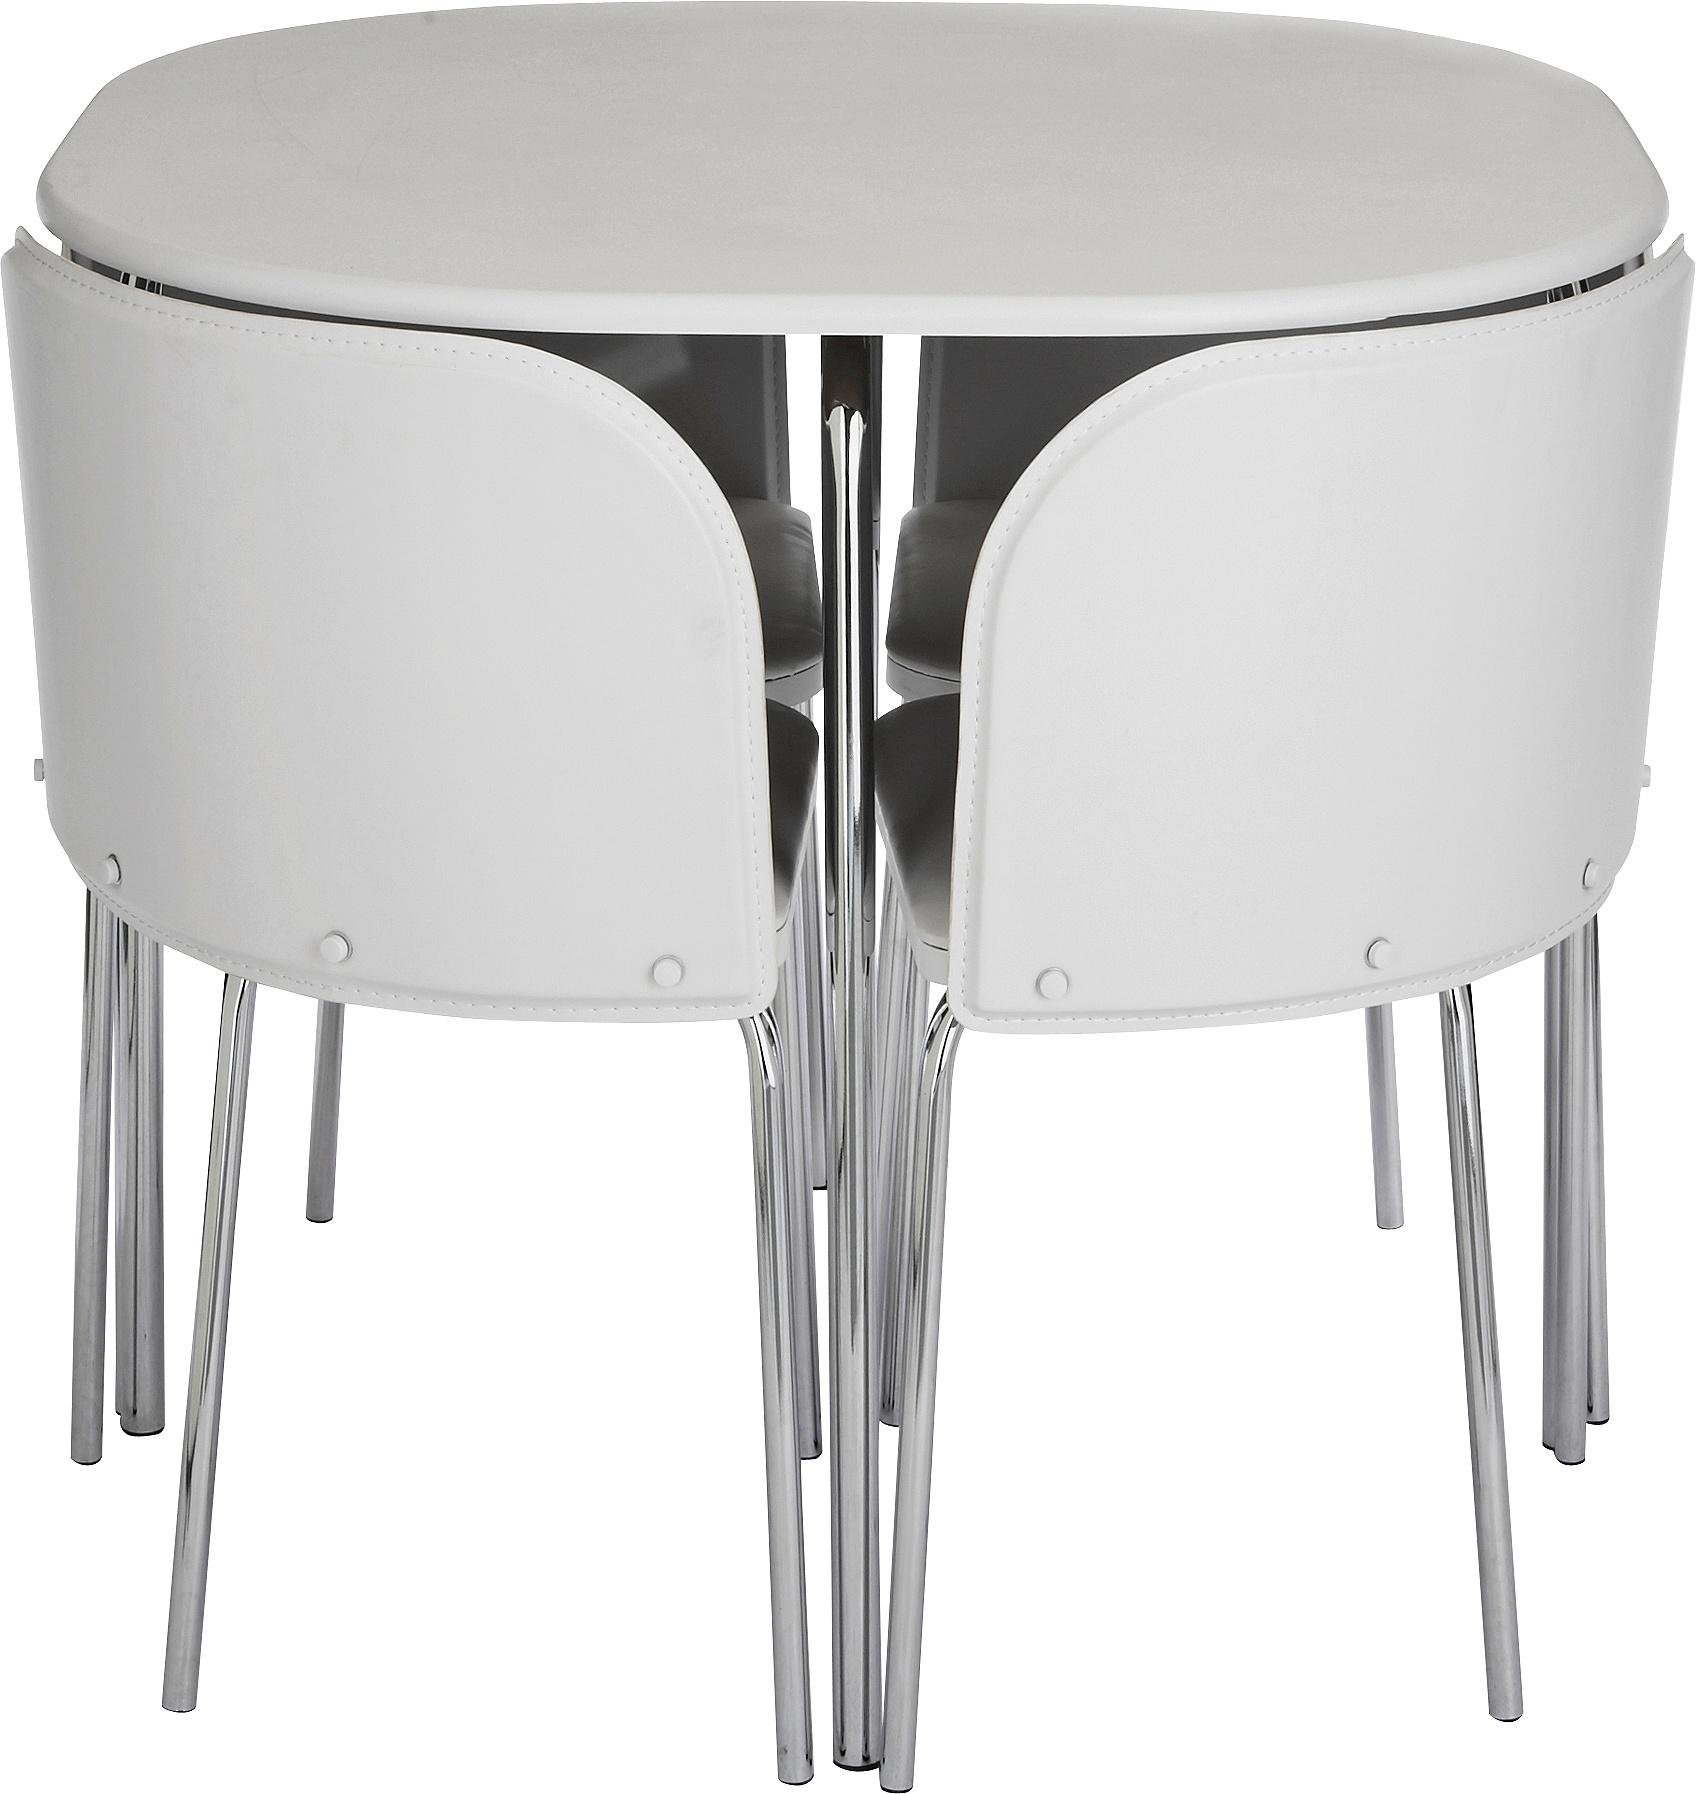 Buy Hygena Amparo Dining Table amp 4 Chairs White at Argos  : 2593807RZ002AUC1667751WebampDefaultPDP570 from www.argos.co.uk size 570 x 513 jpeg 22kB